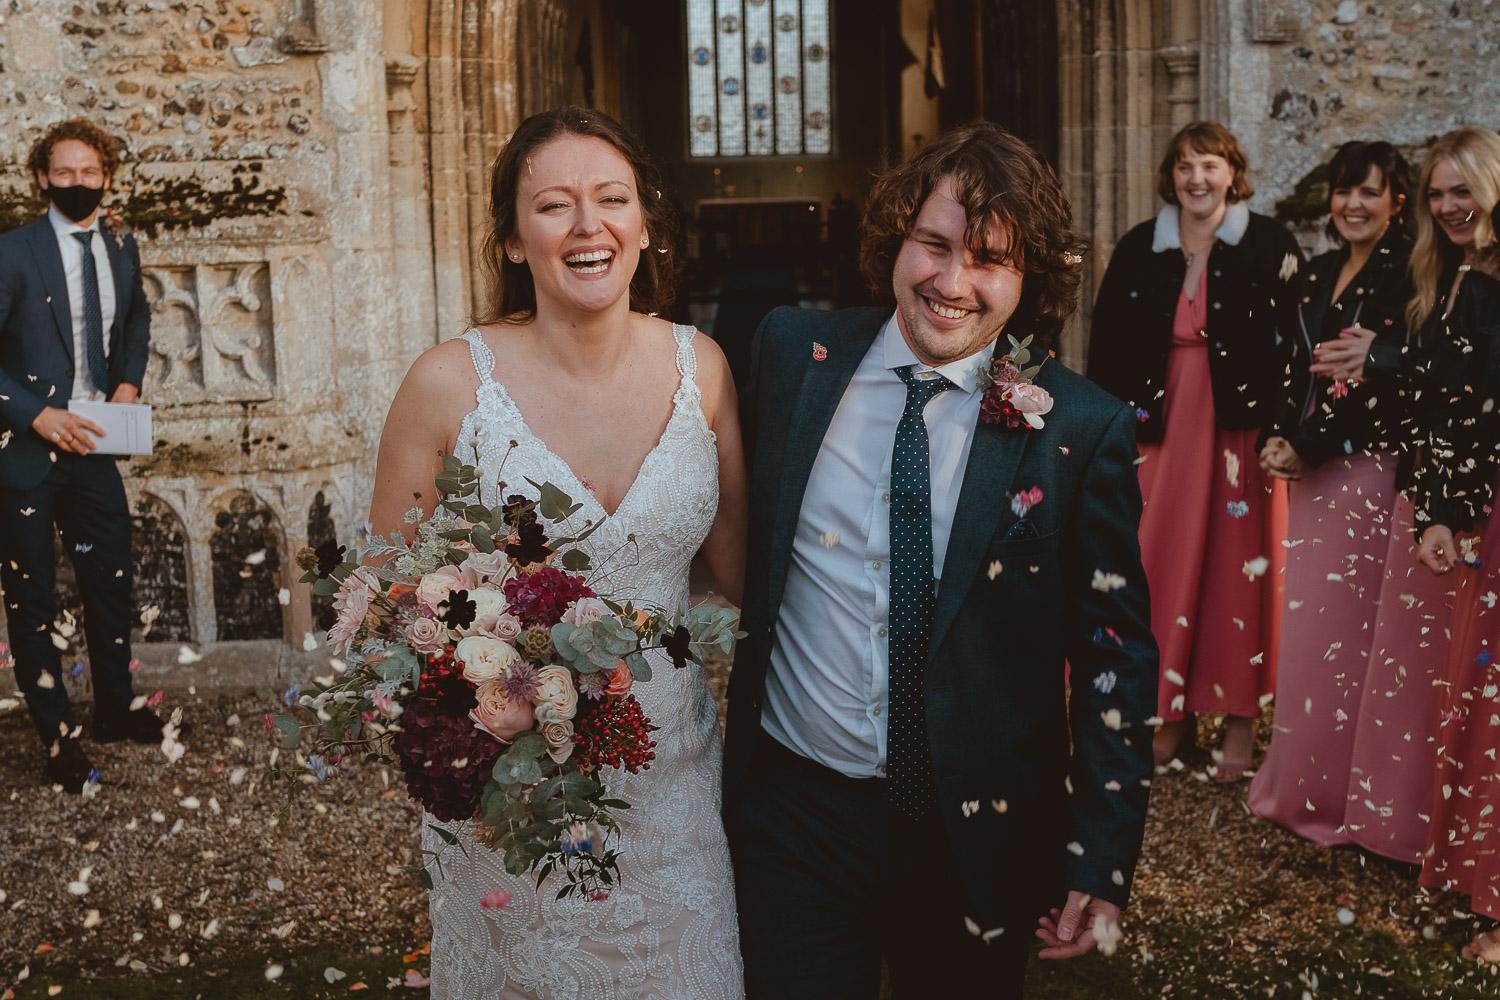 swanton morley church wedding in norfolk by georgia rachael